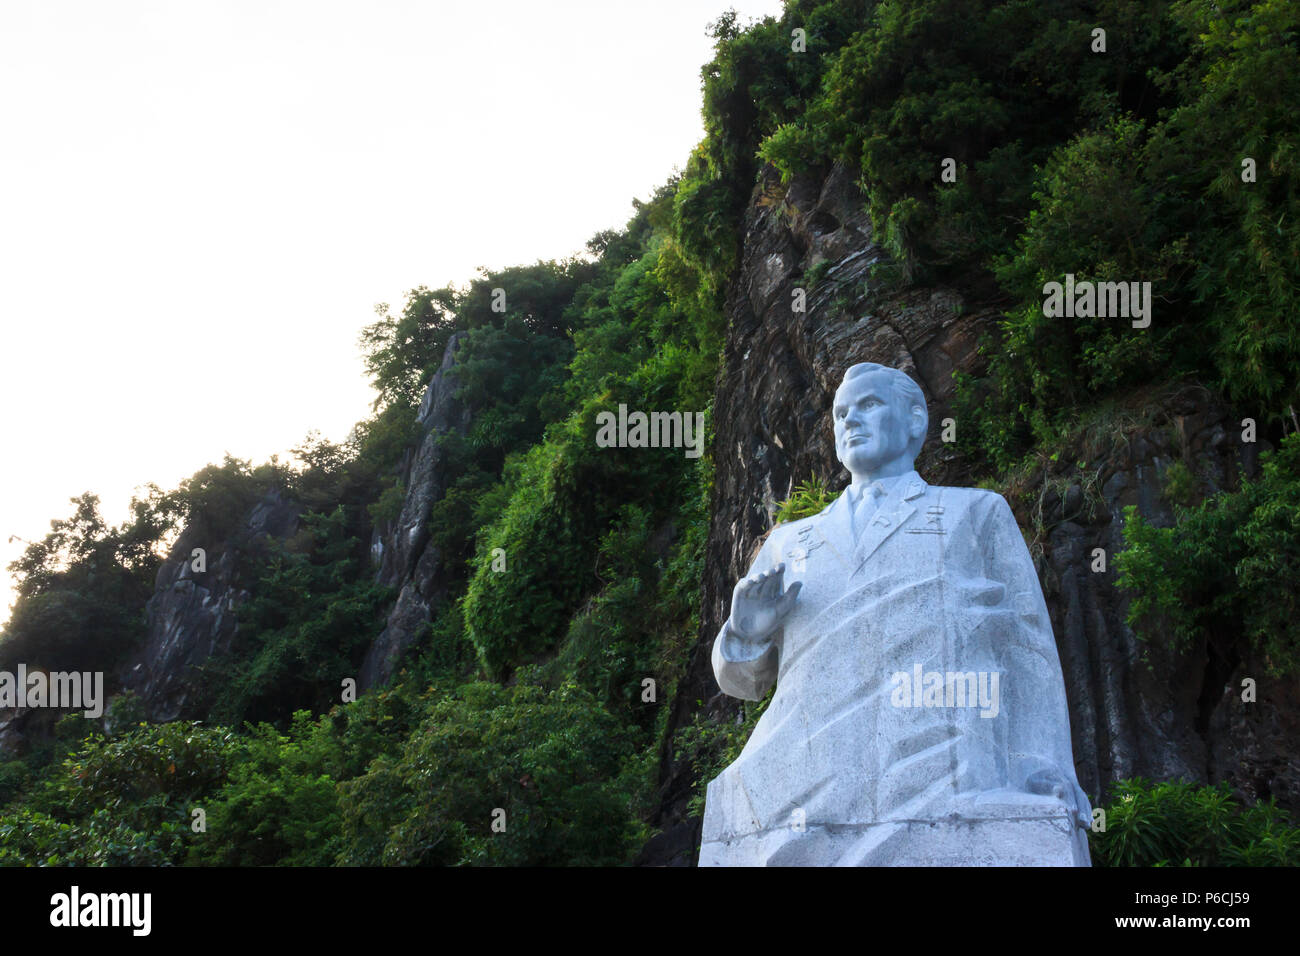 Ha Long Bay, Vietnam - October 22,2017: Statue of cosmonaut Gherman Titov on Ti Top Island in Ha Long Bay, a UNESCO World Heritage Site and popular tr - Stock Image